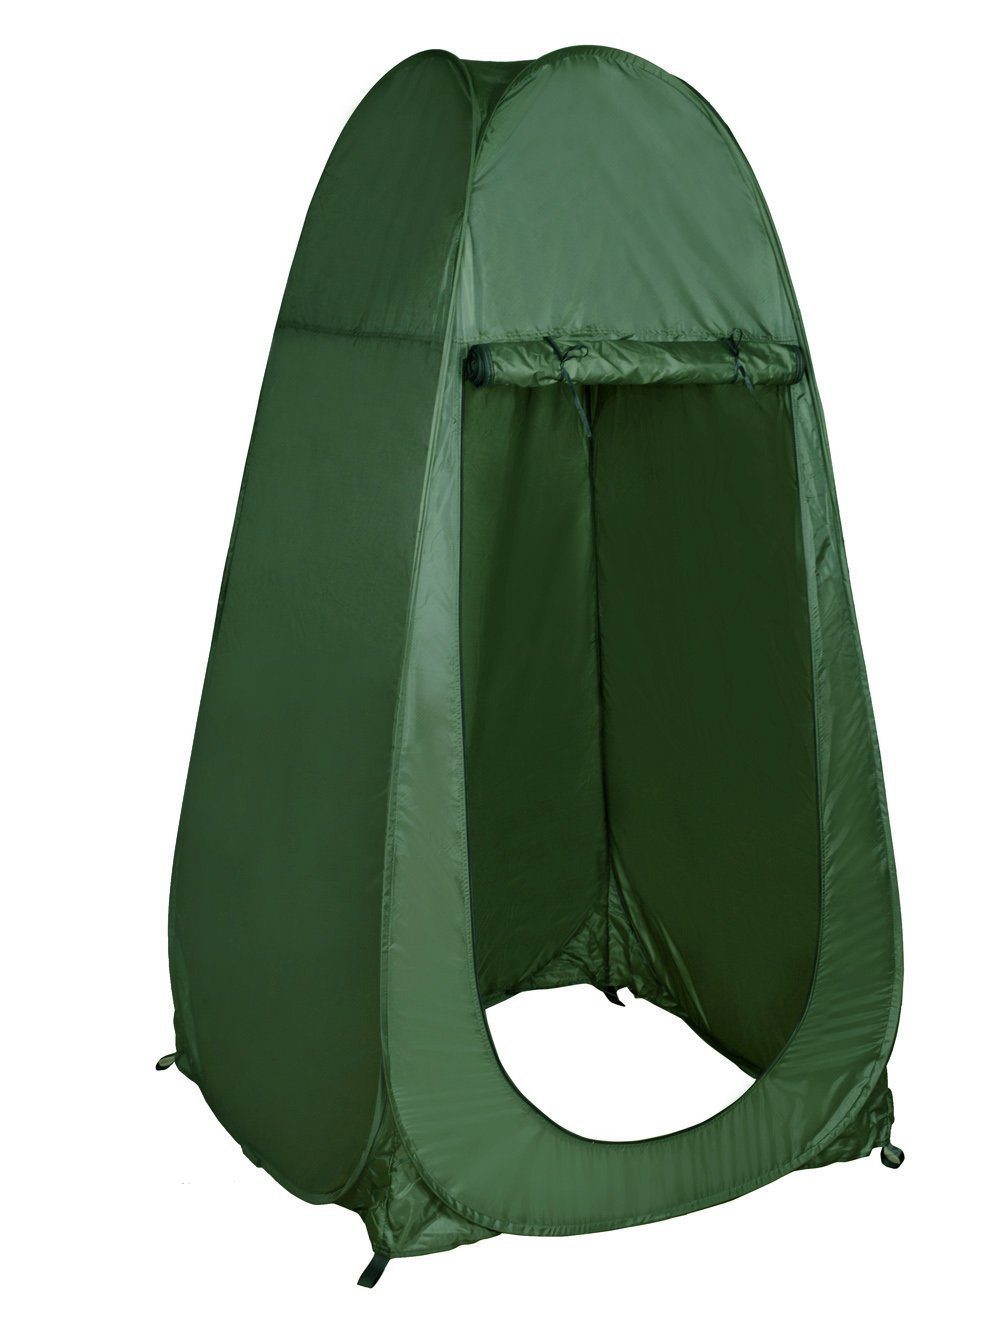 Outdoor Waterproof Automatic 4 Person Camping Family Tent